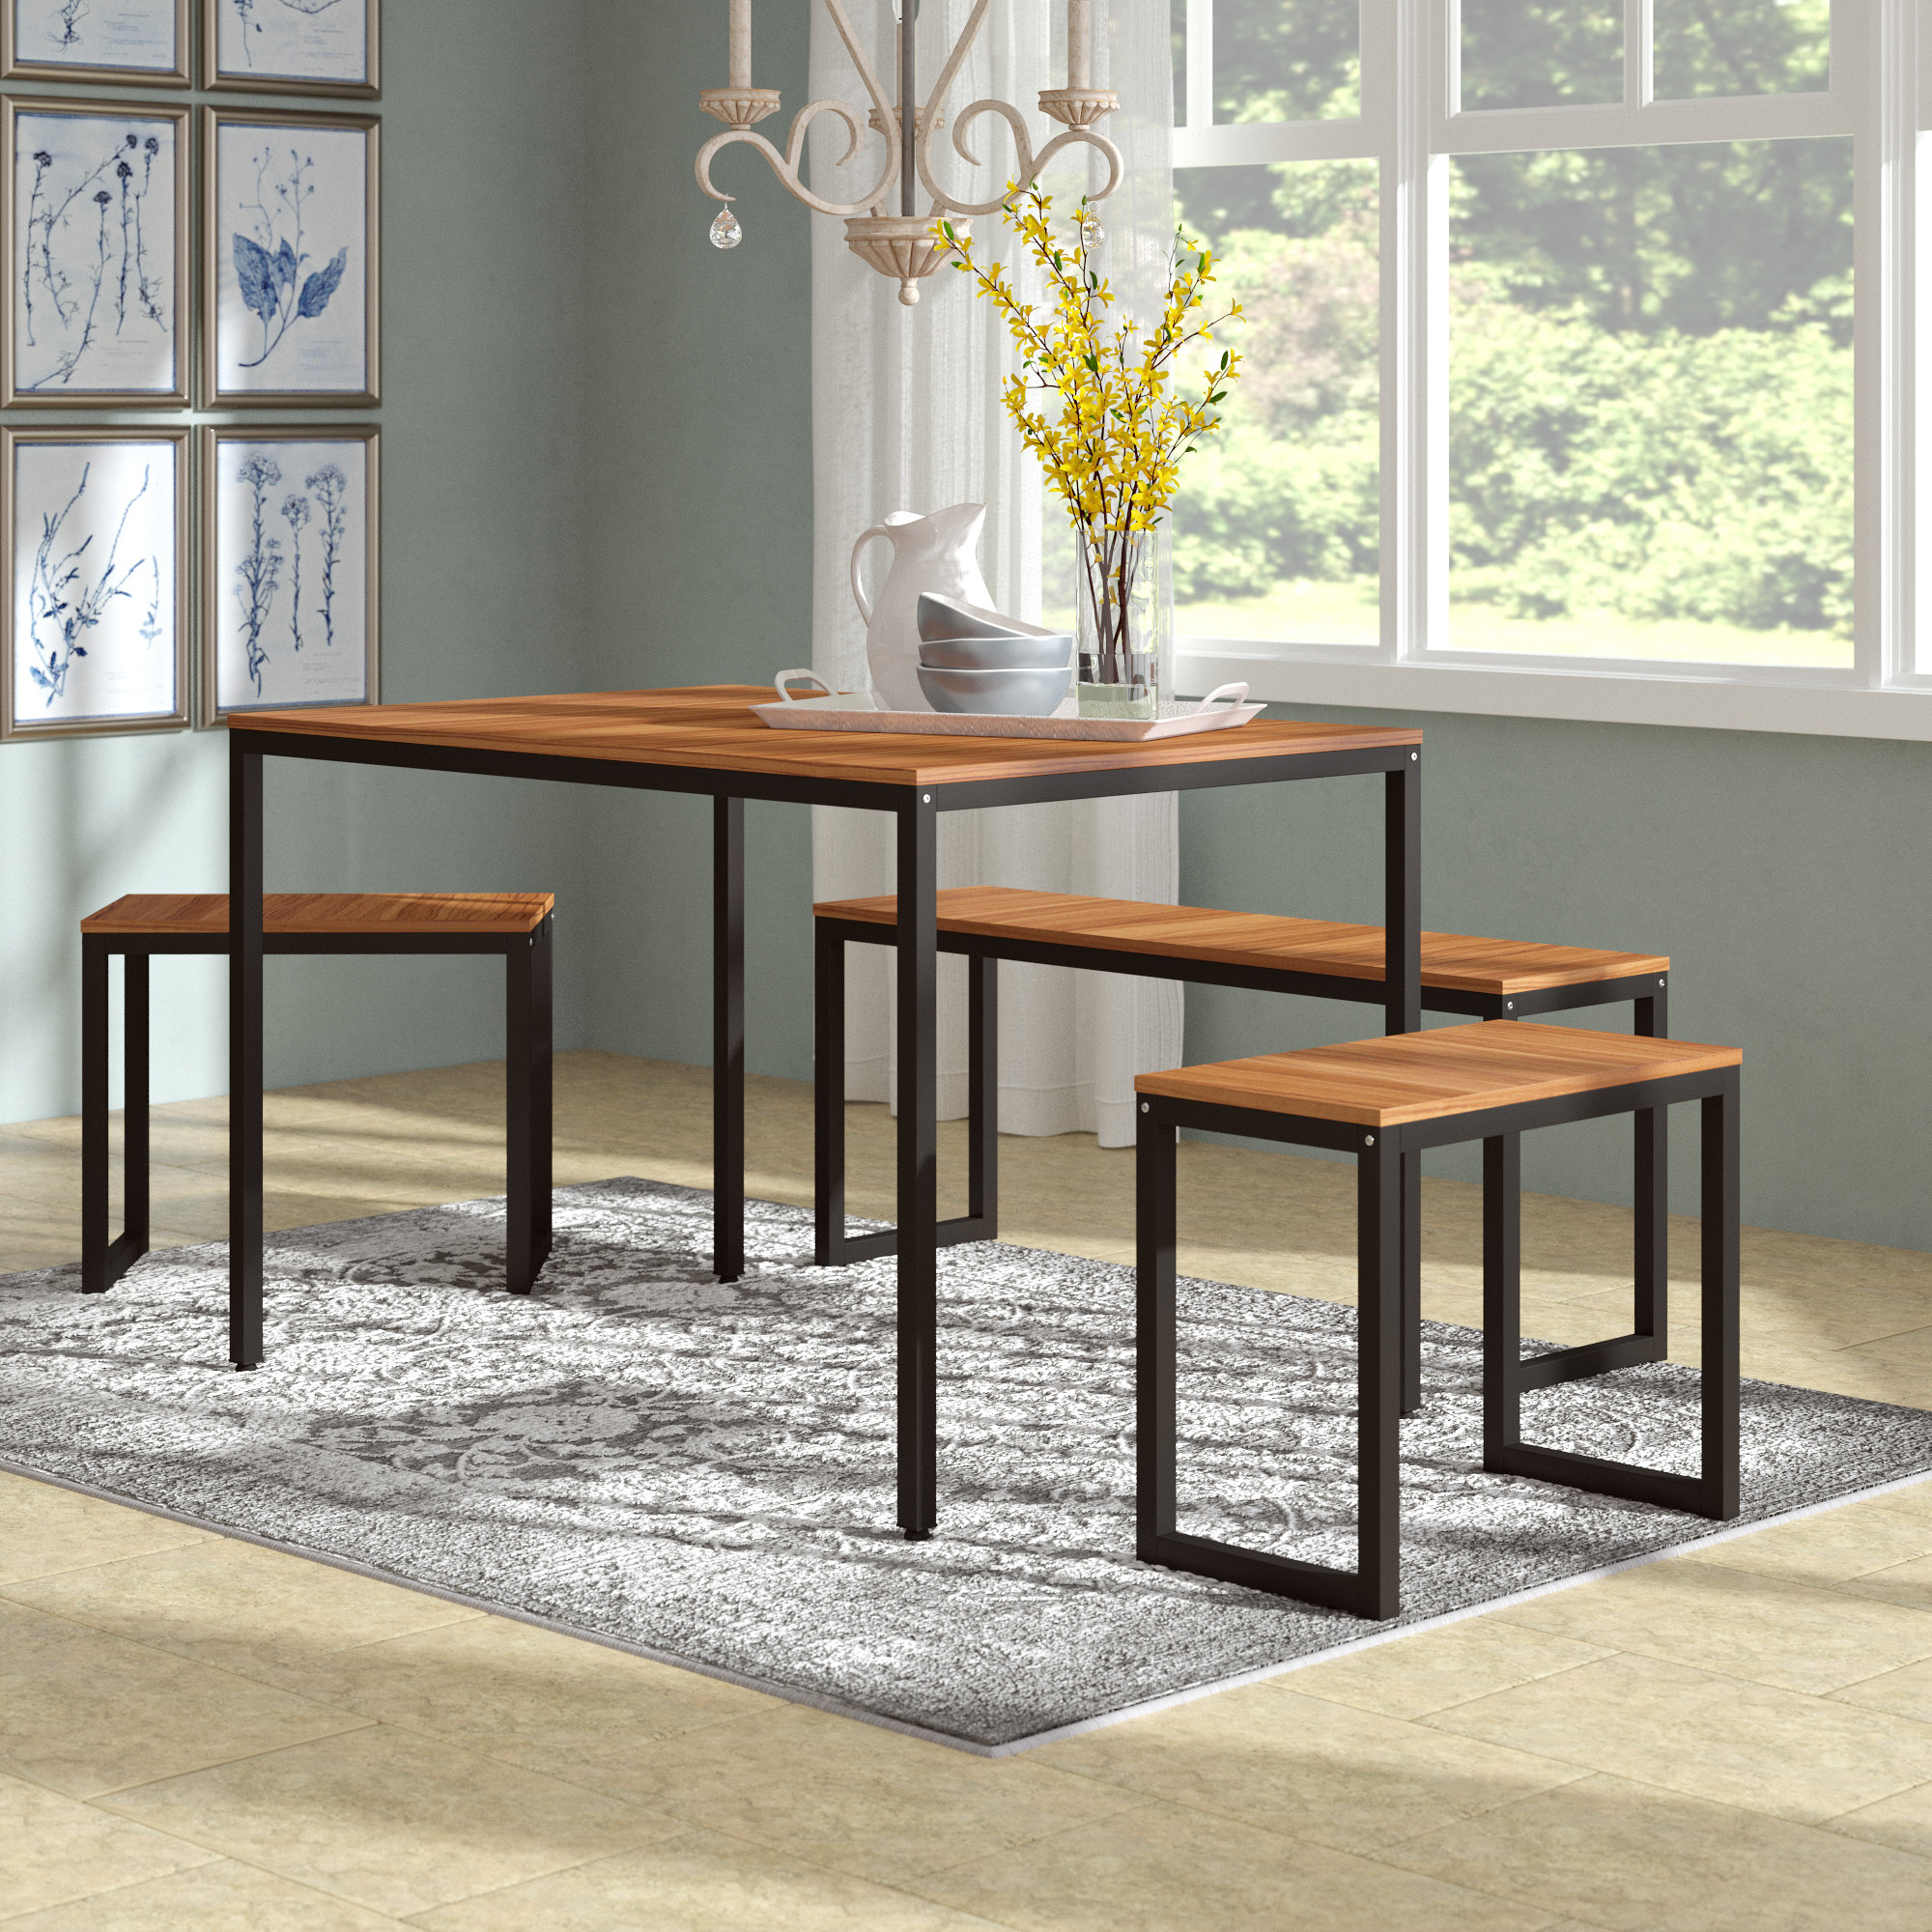 John 4 Piece Dining Set Within Most Popular John 4 Piece Dining Sets (Photo 1 of 20)